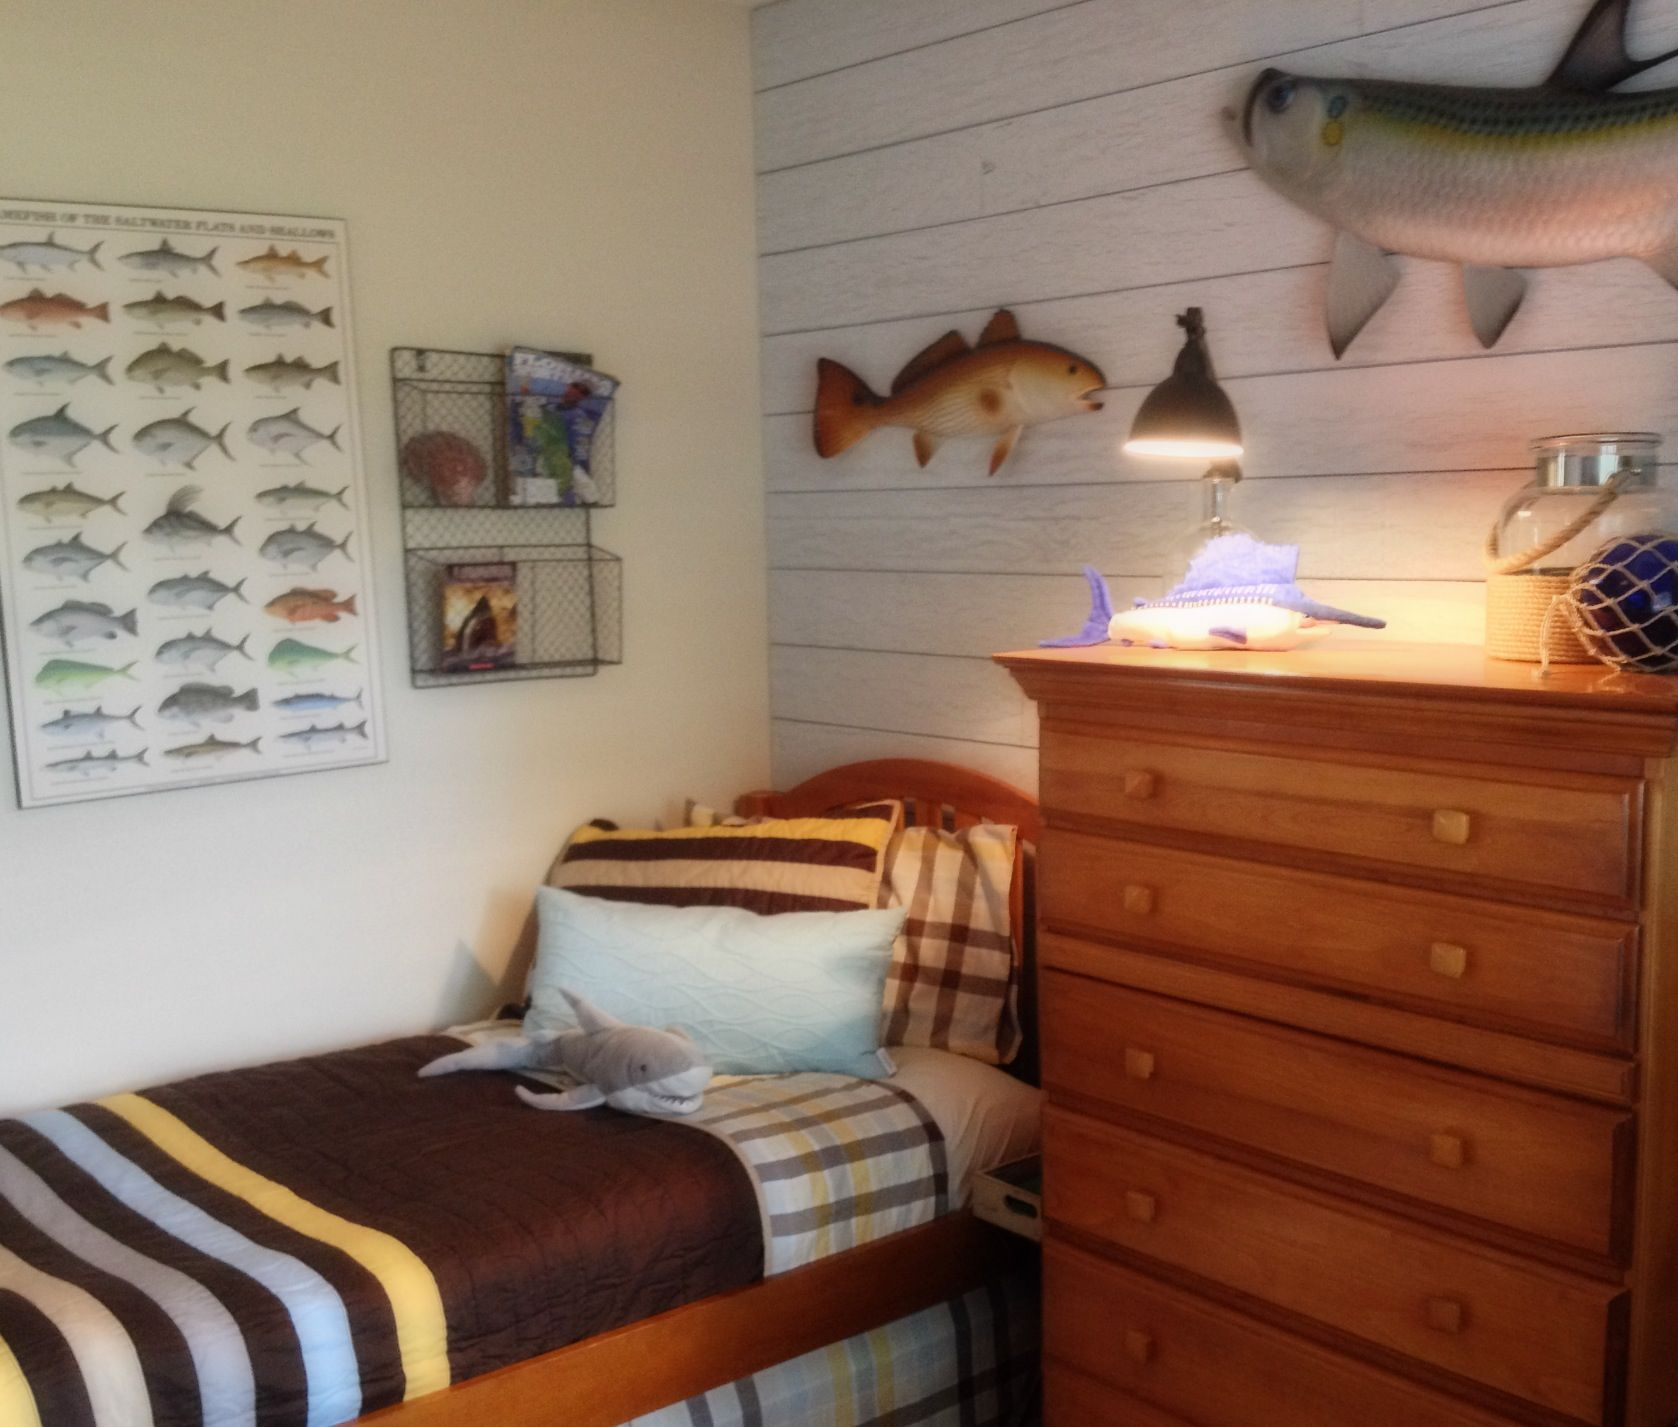 Pin By Nicole Pasukinski On My Completed Projects Fishing Bedroom Fishing Themed Bedroom Fishing Room